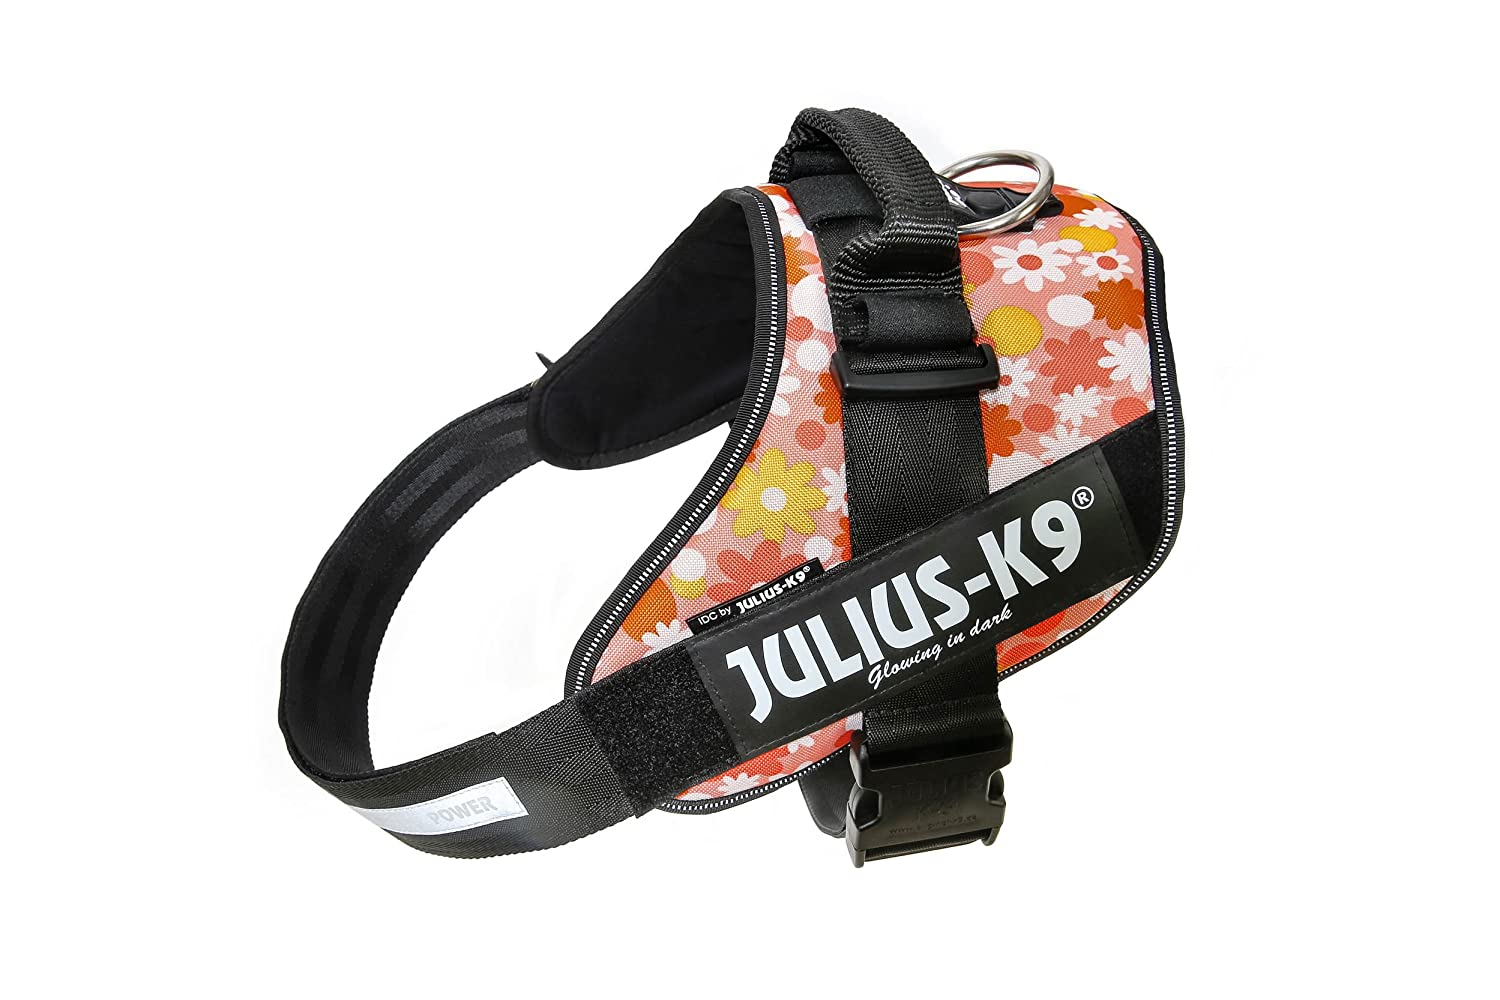 Julius-K9 IDC-Power Harness, Pink with Flowers, Size  3 82-115 cm 32.5-46.5